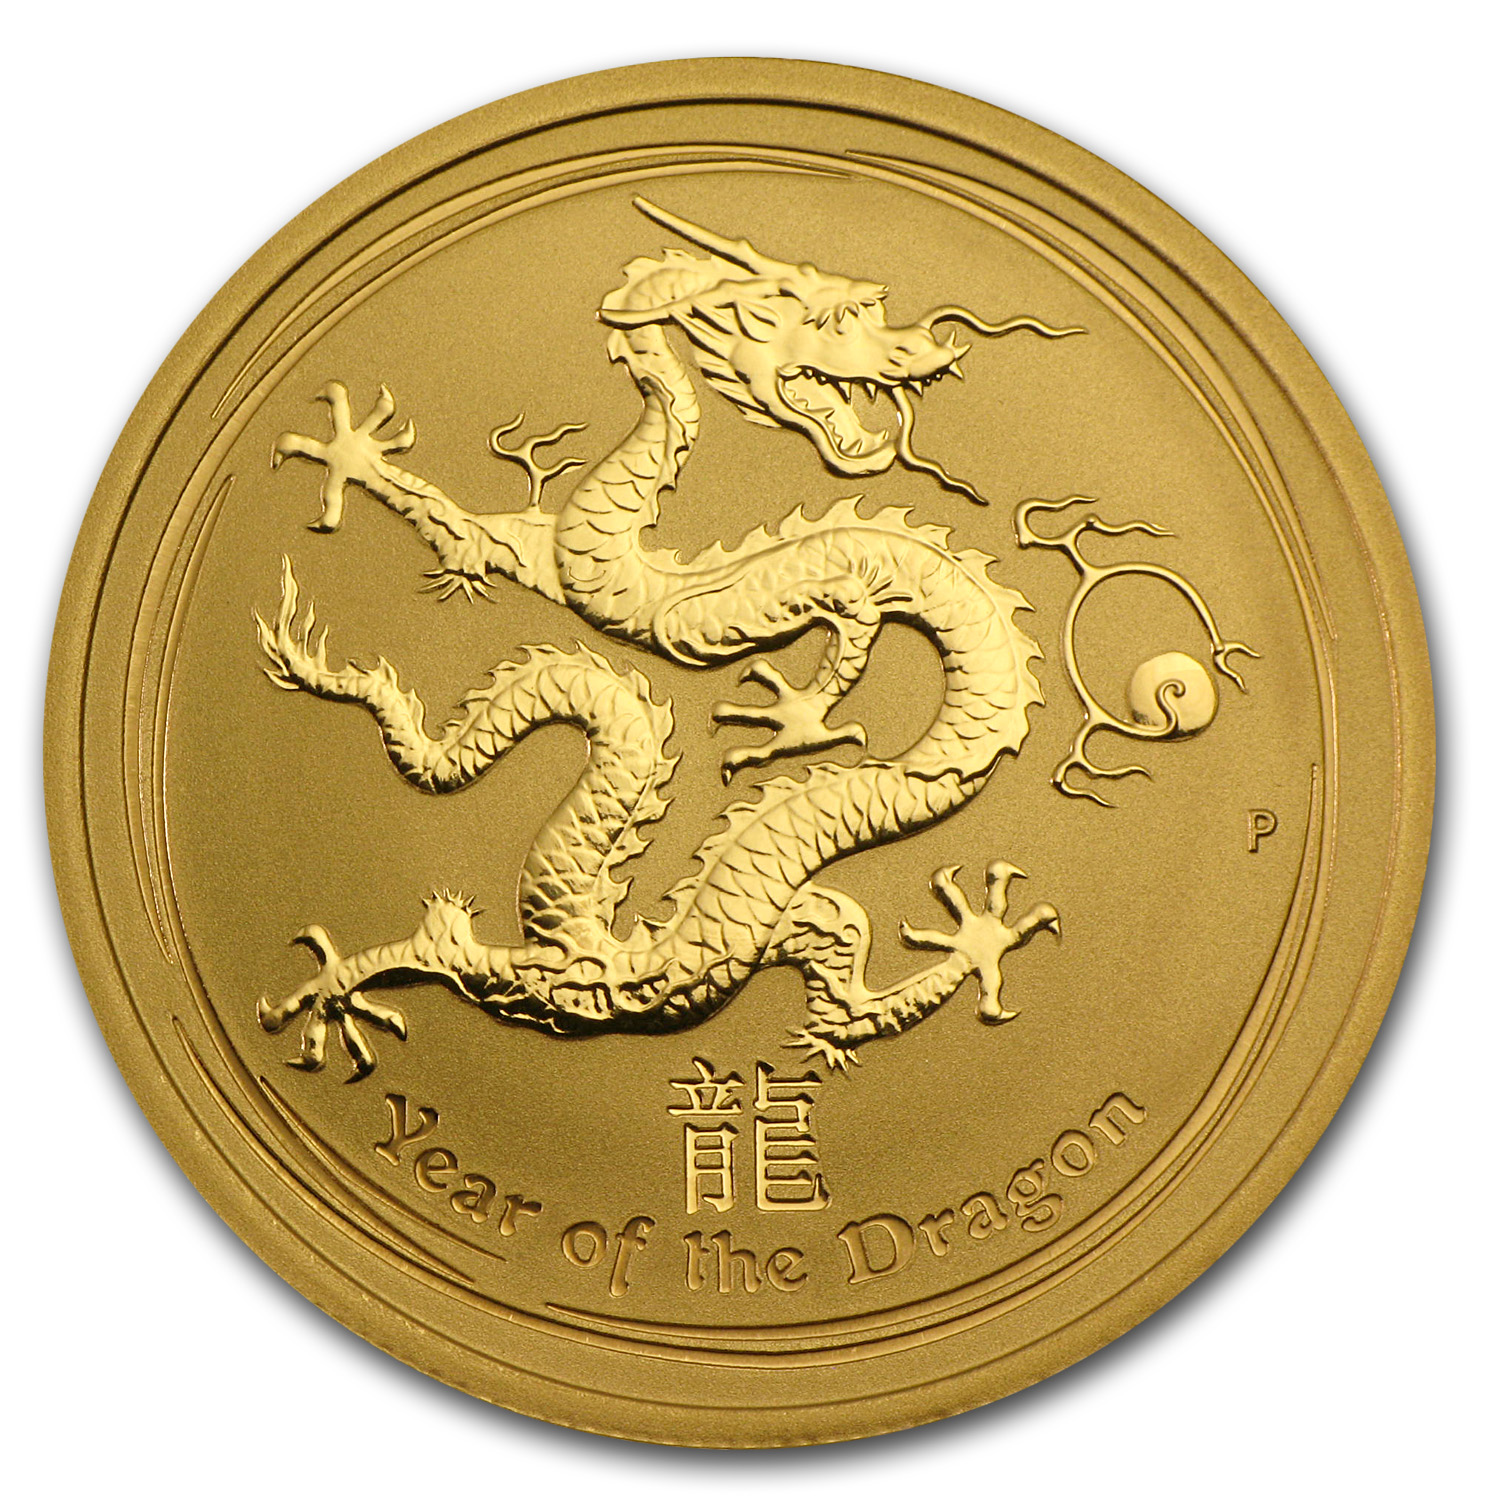 2012 Australia 1/2 oz Gold Lunar Dragon BU (Series II)